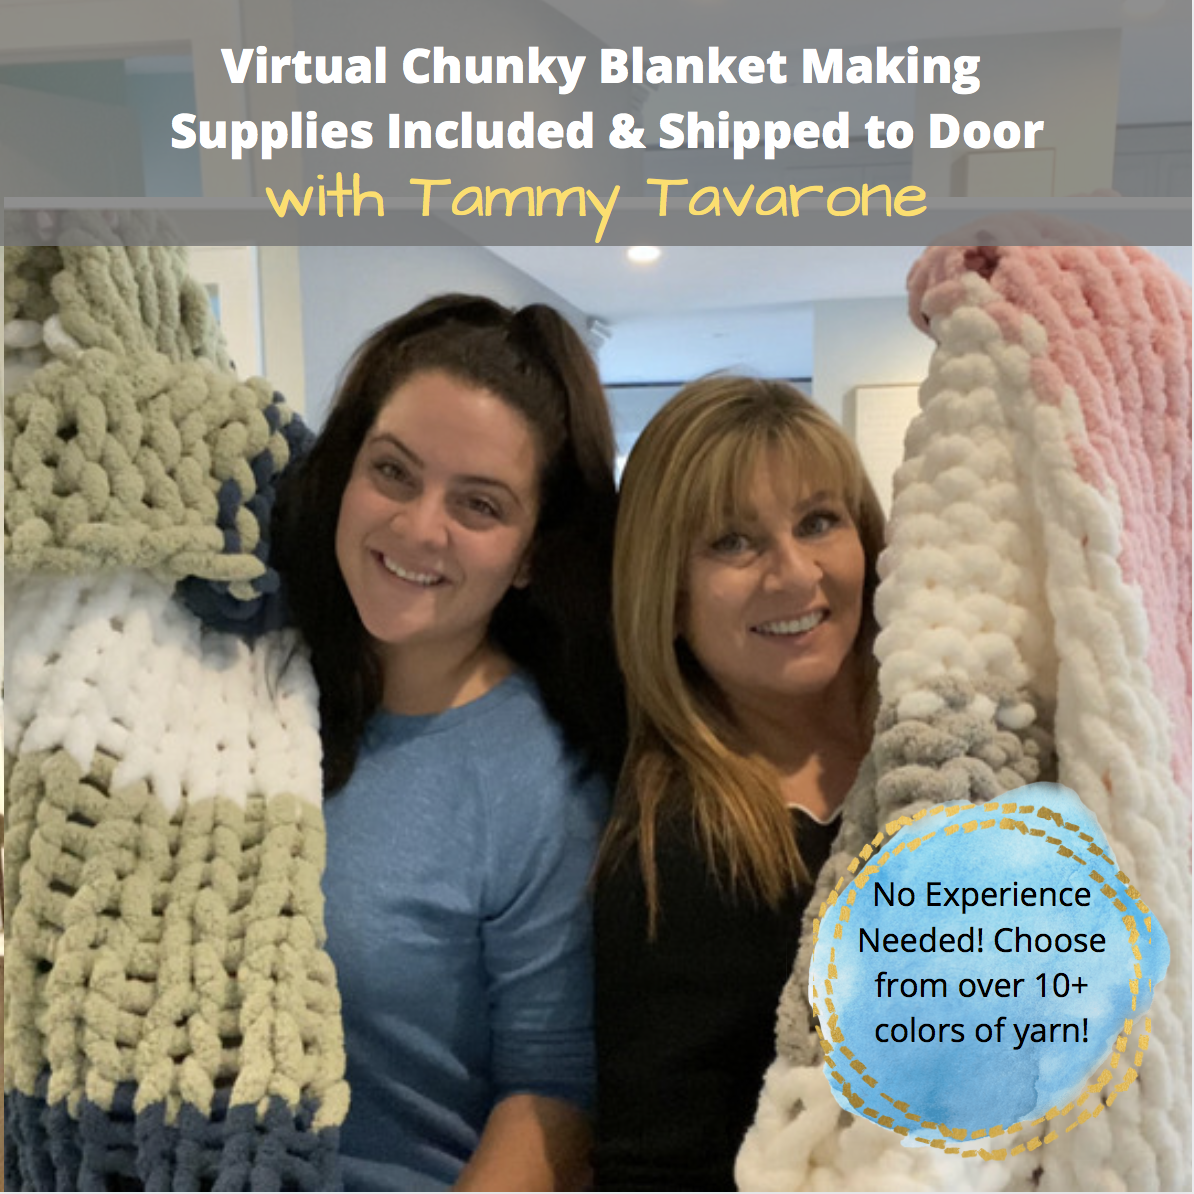 A Virtual Chunky Blanket Making with Tammy Supplies Shipped experience project by Yaymaker